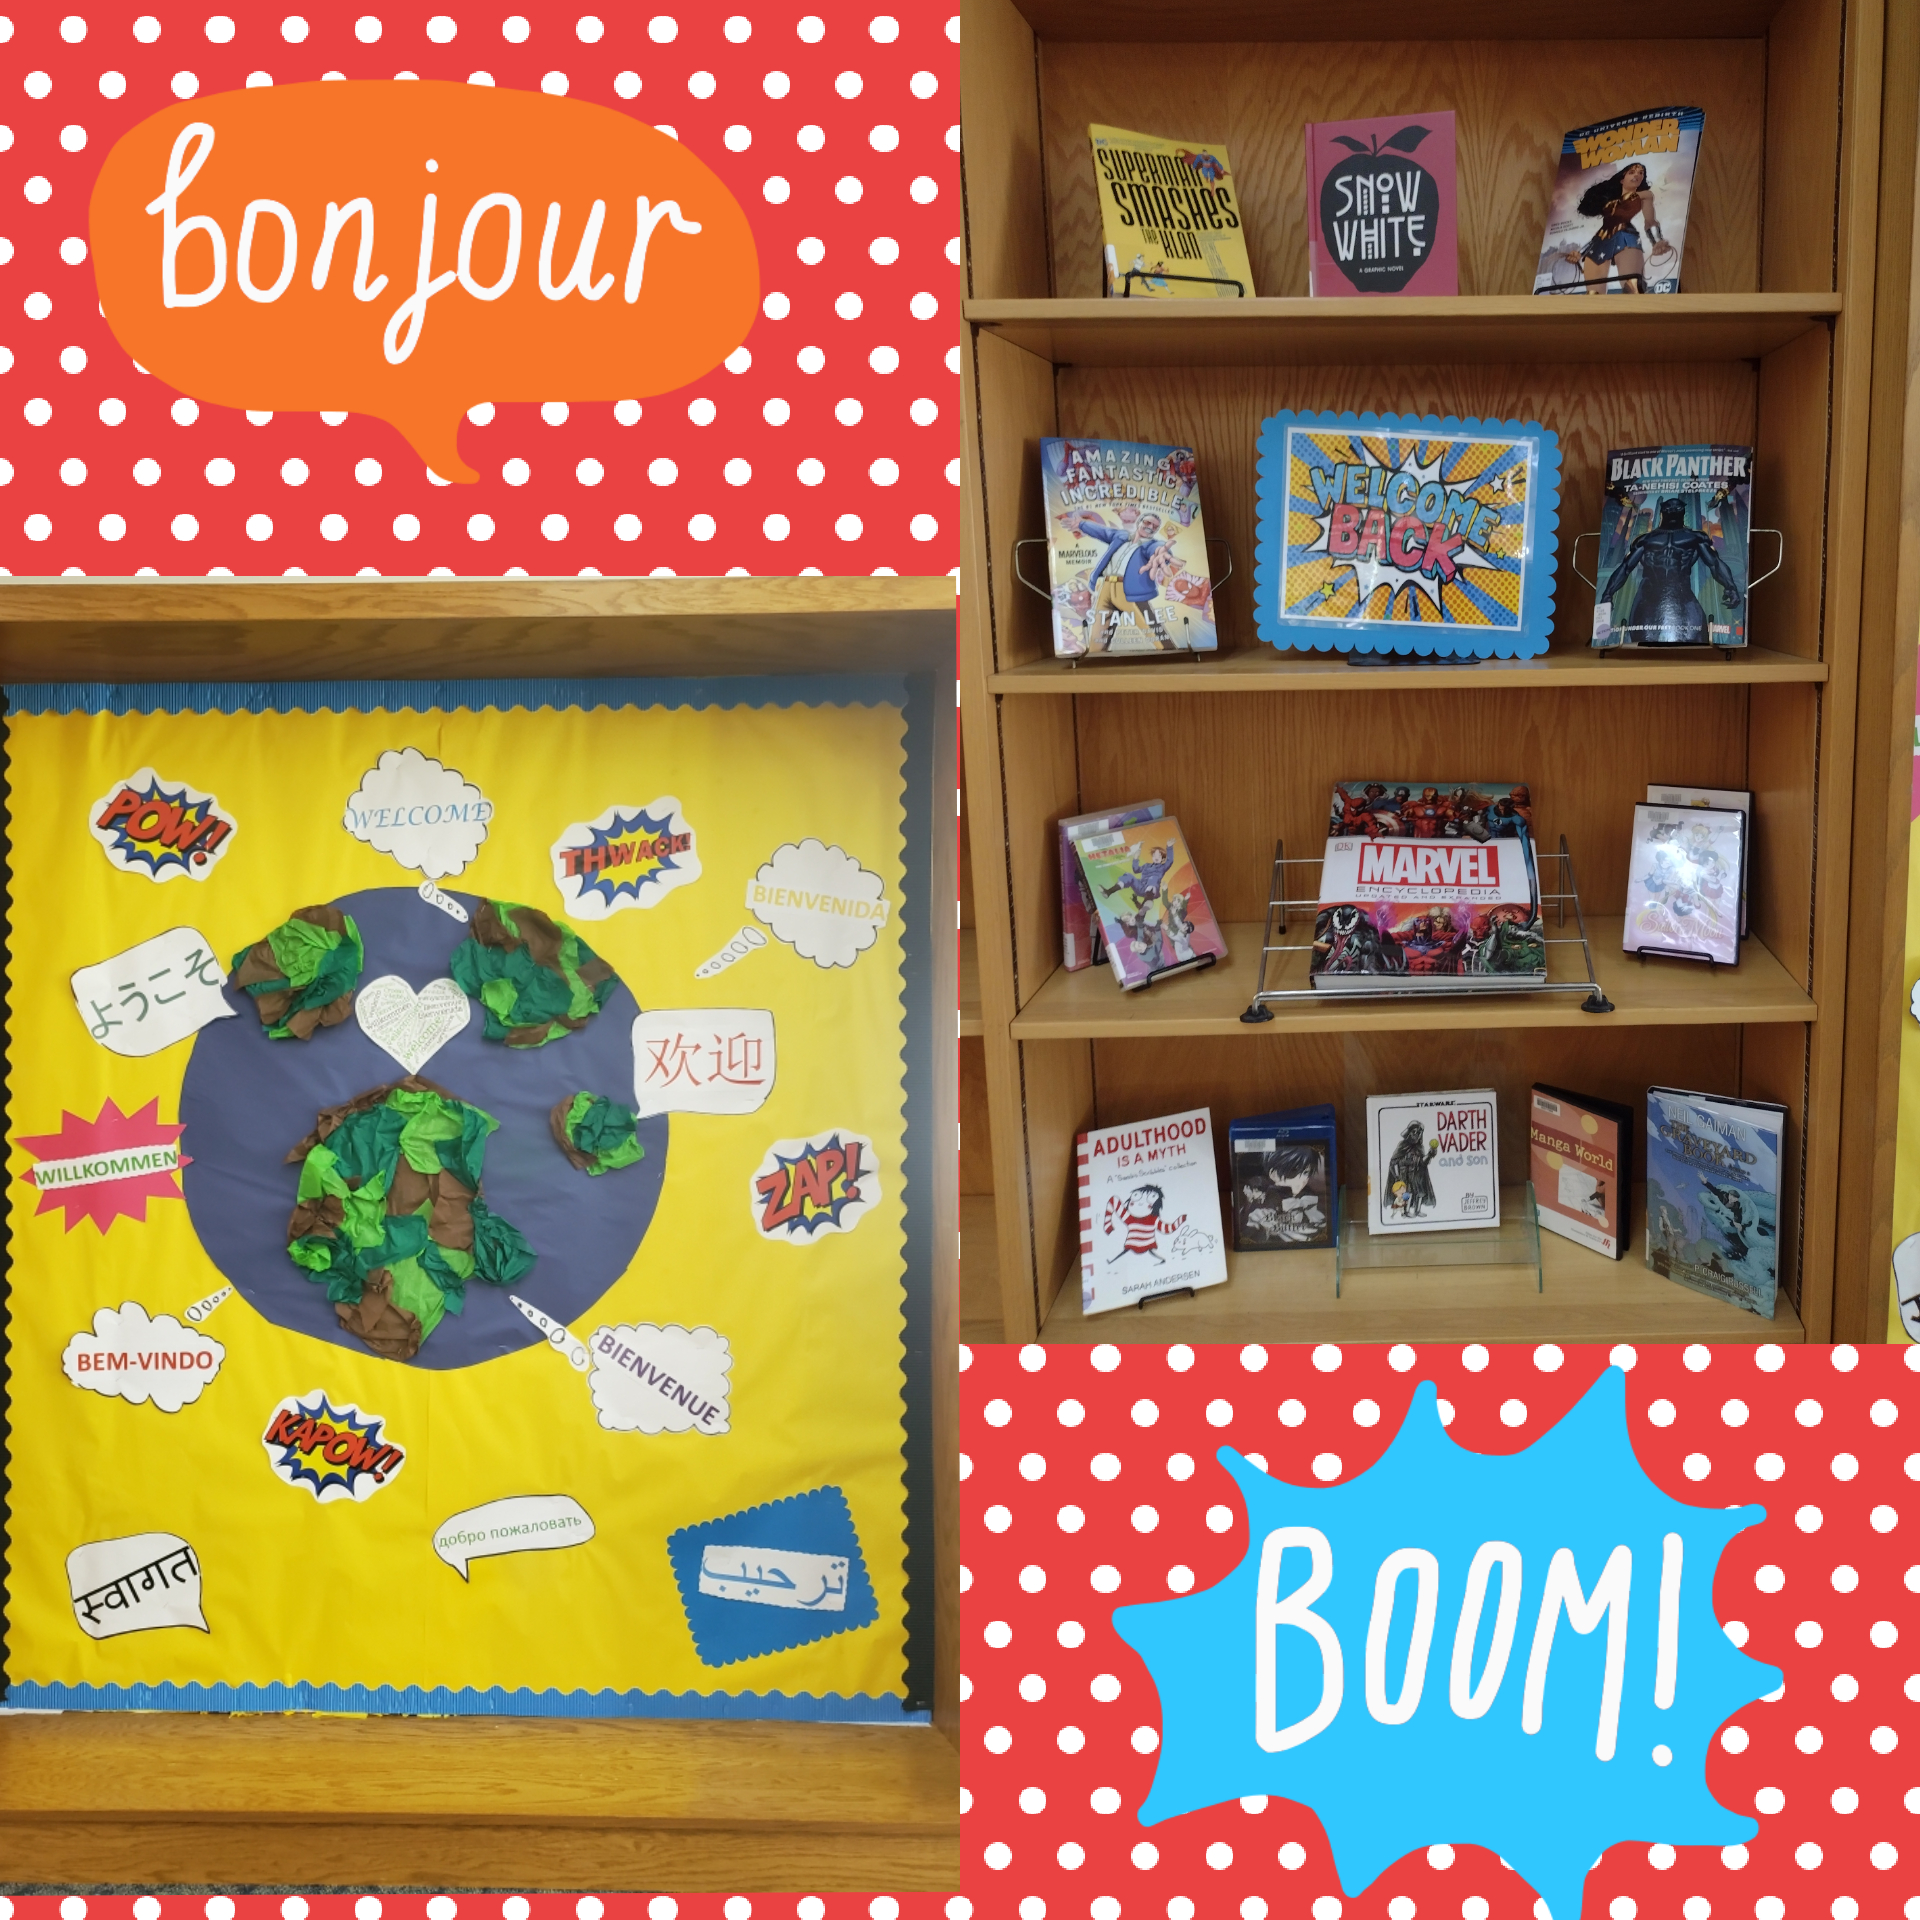 First Week of Classes Welcome board and comic book/graphic novel display